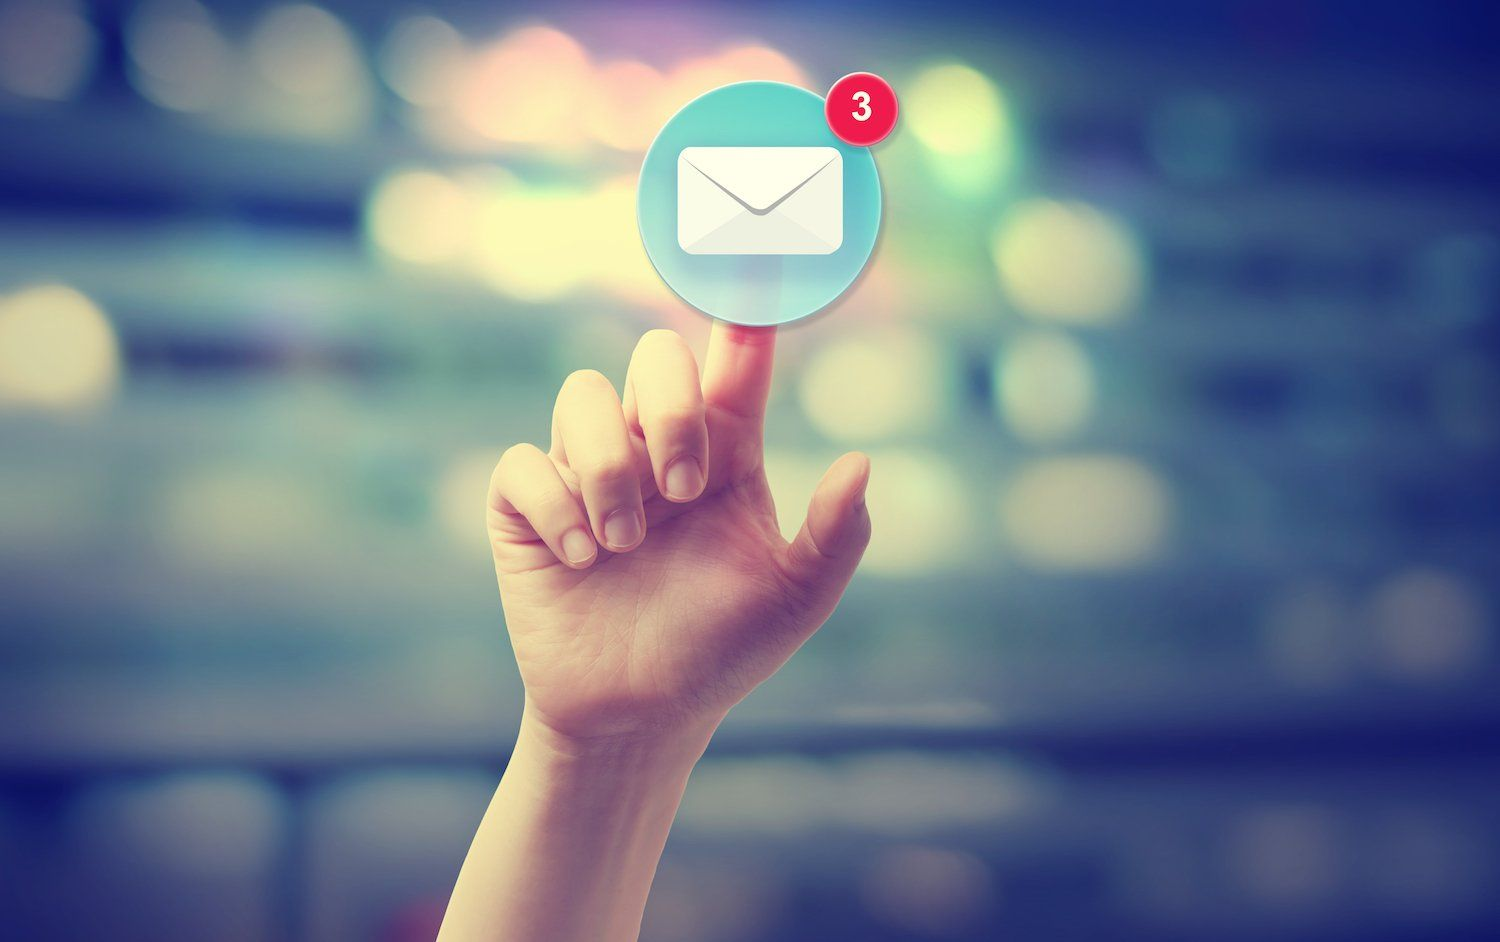 21 Inc Opens Bitcoin Email Service to General Public http://bit.ly/2pOA2Fe http://bit.ly/2qvcLEg